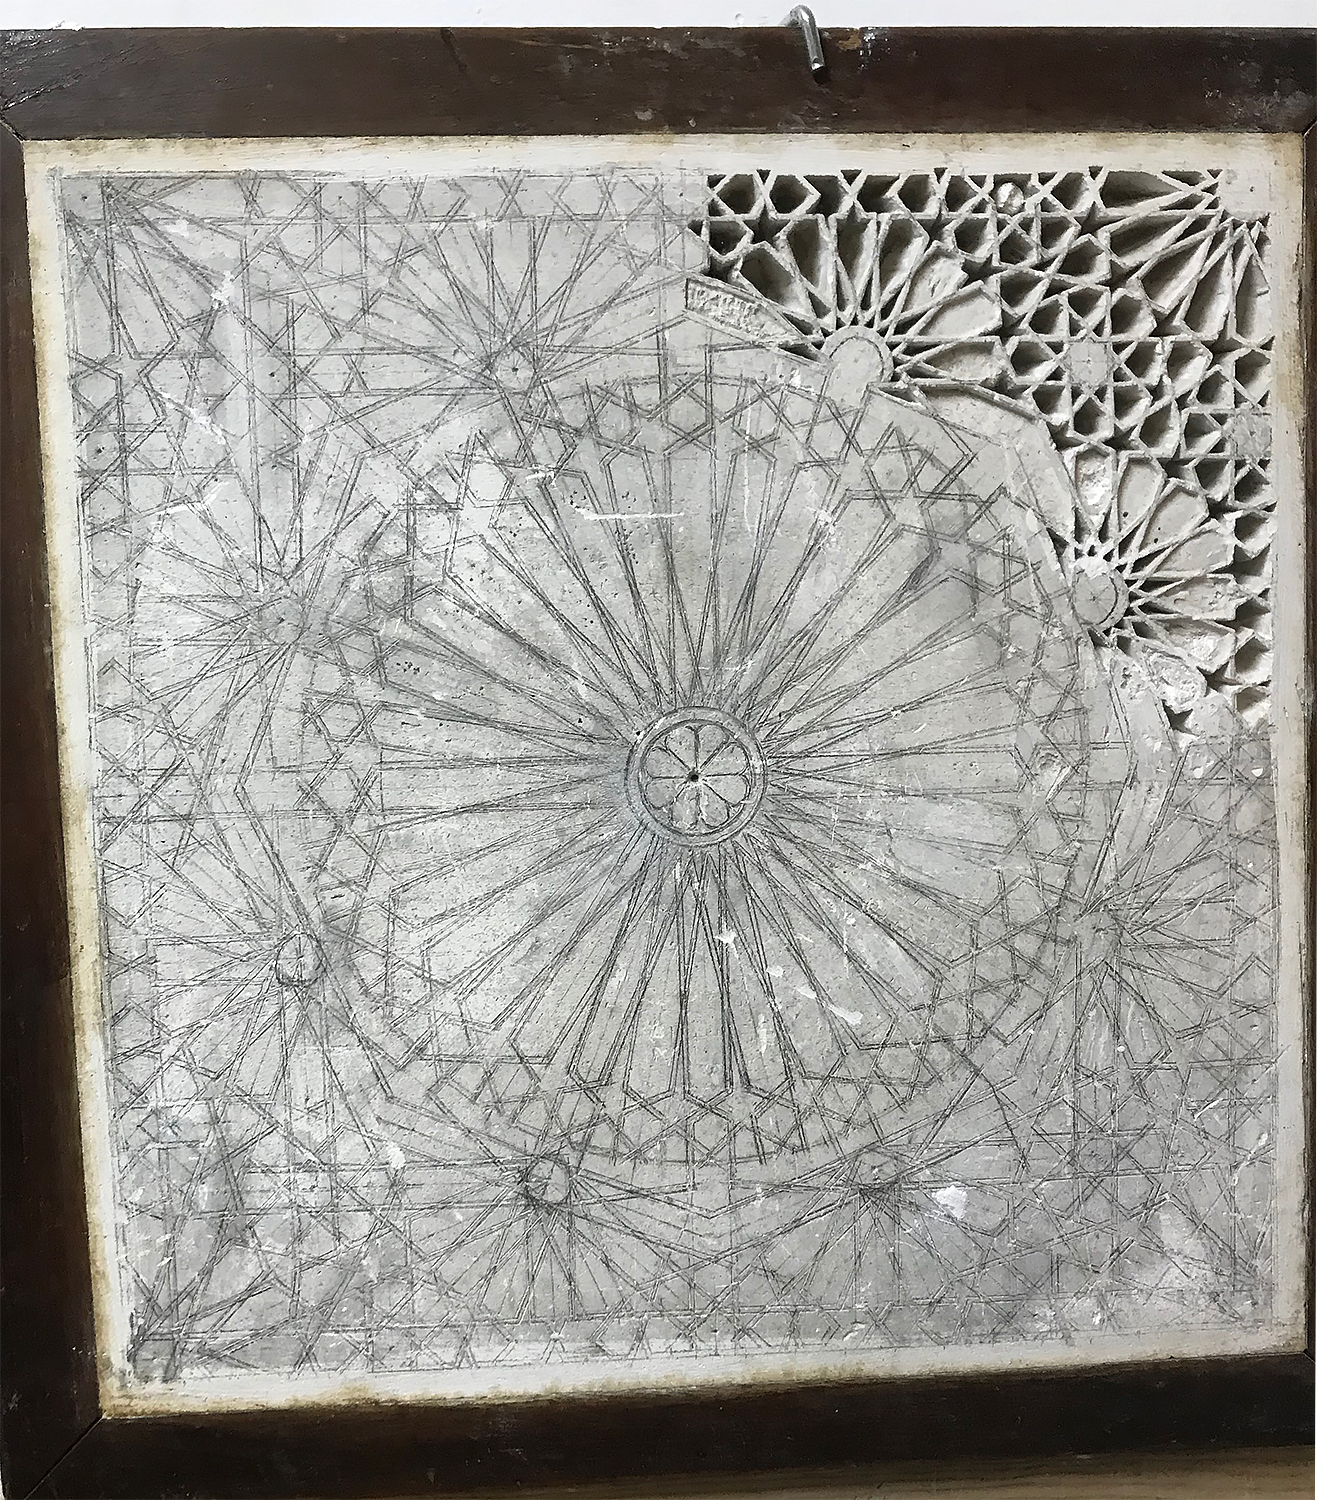 A complex pattern drawn on plaster with only a compass and ruler